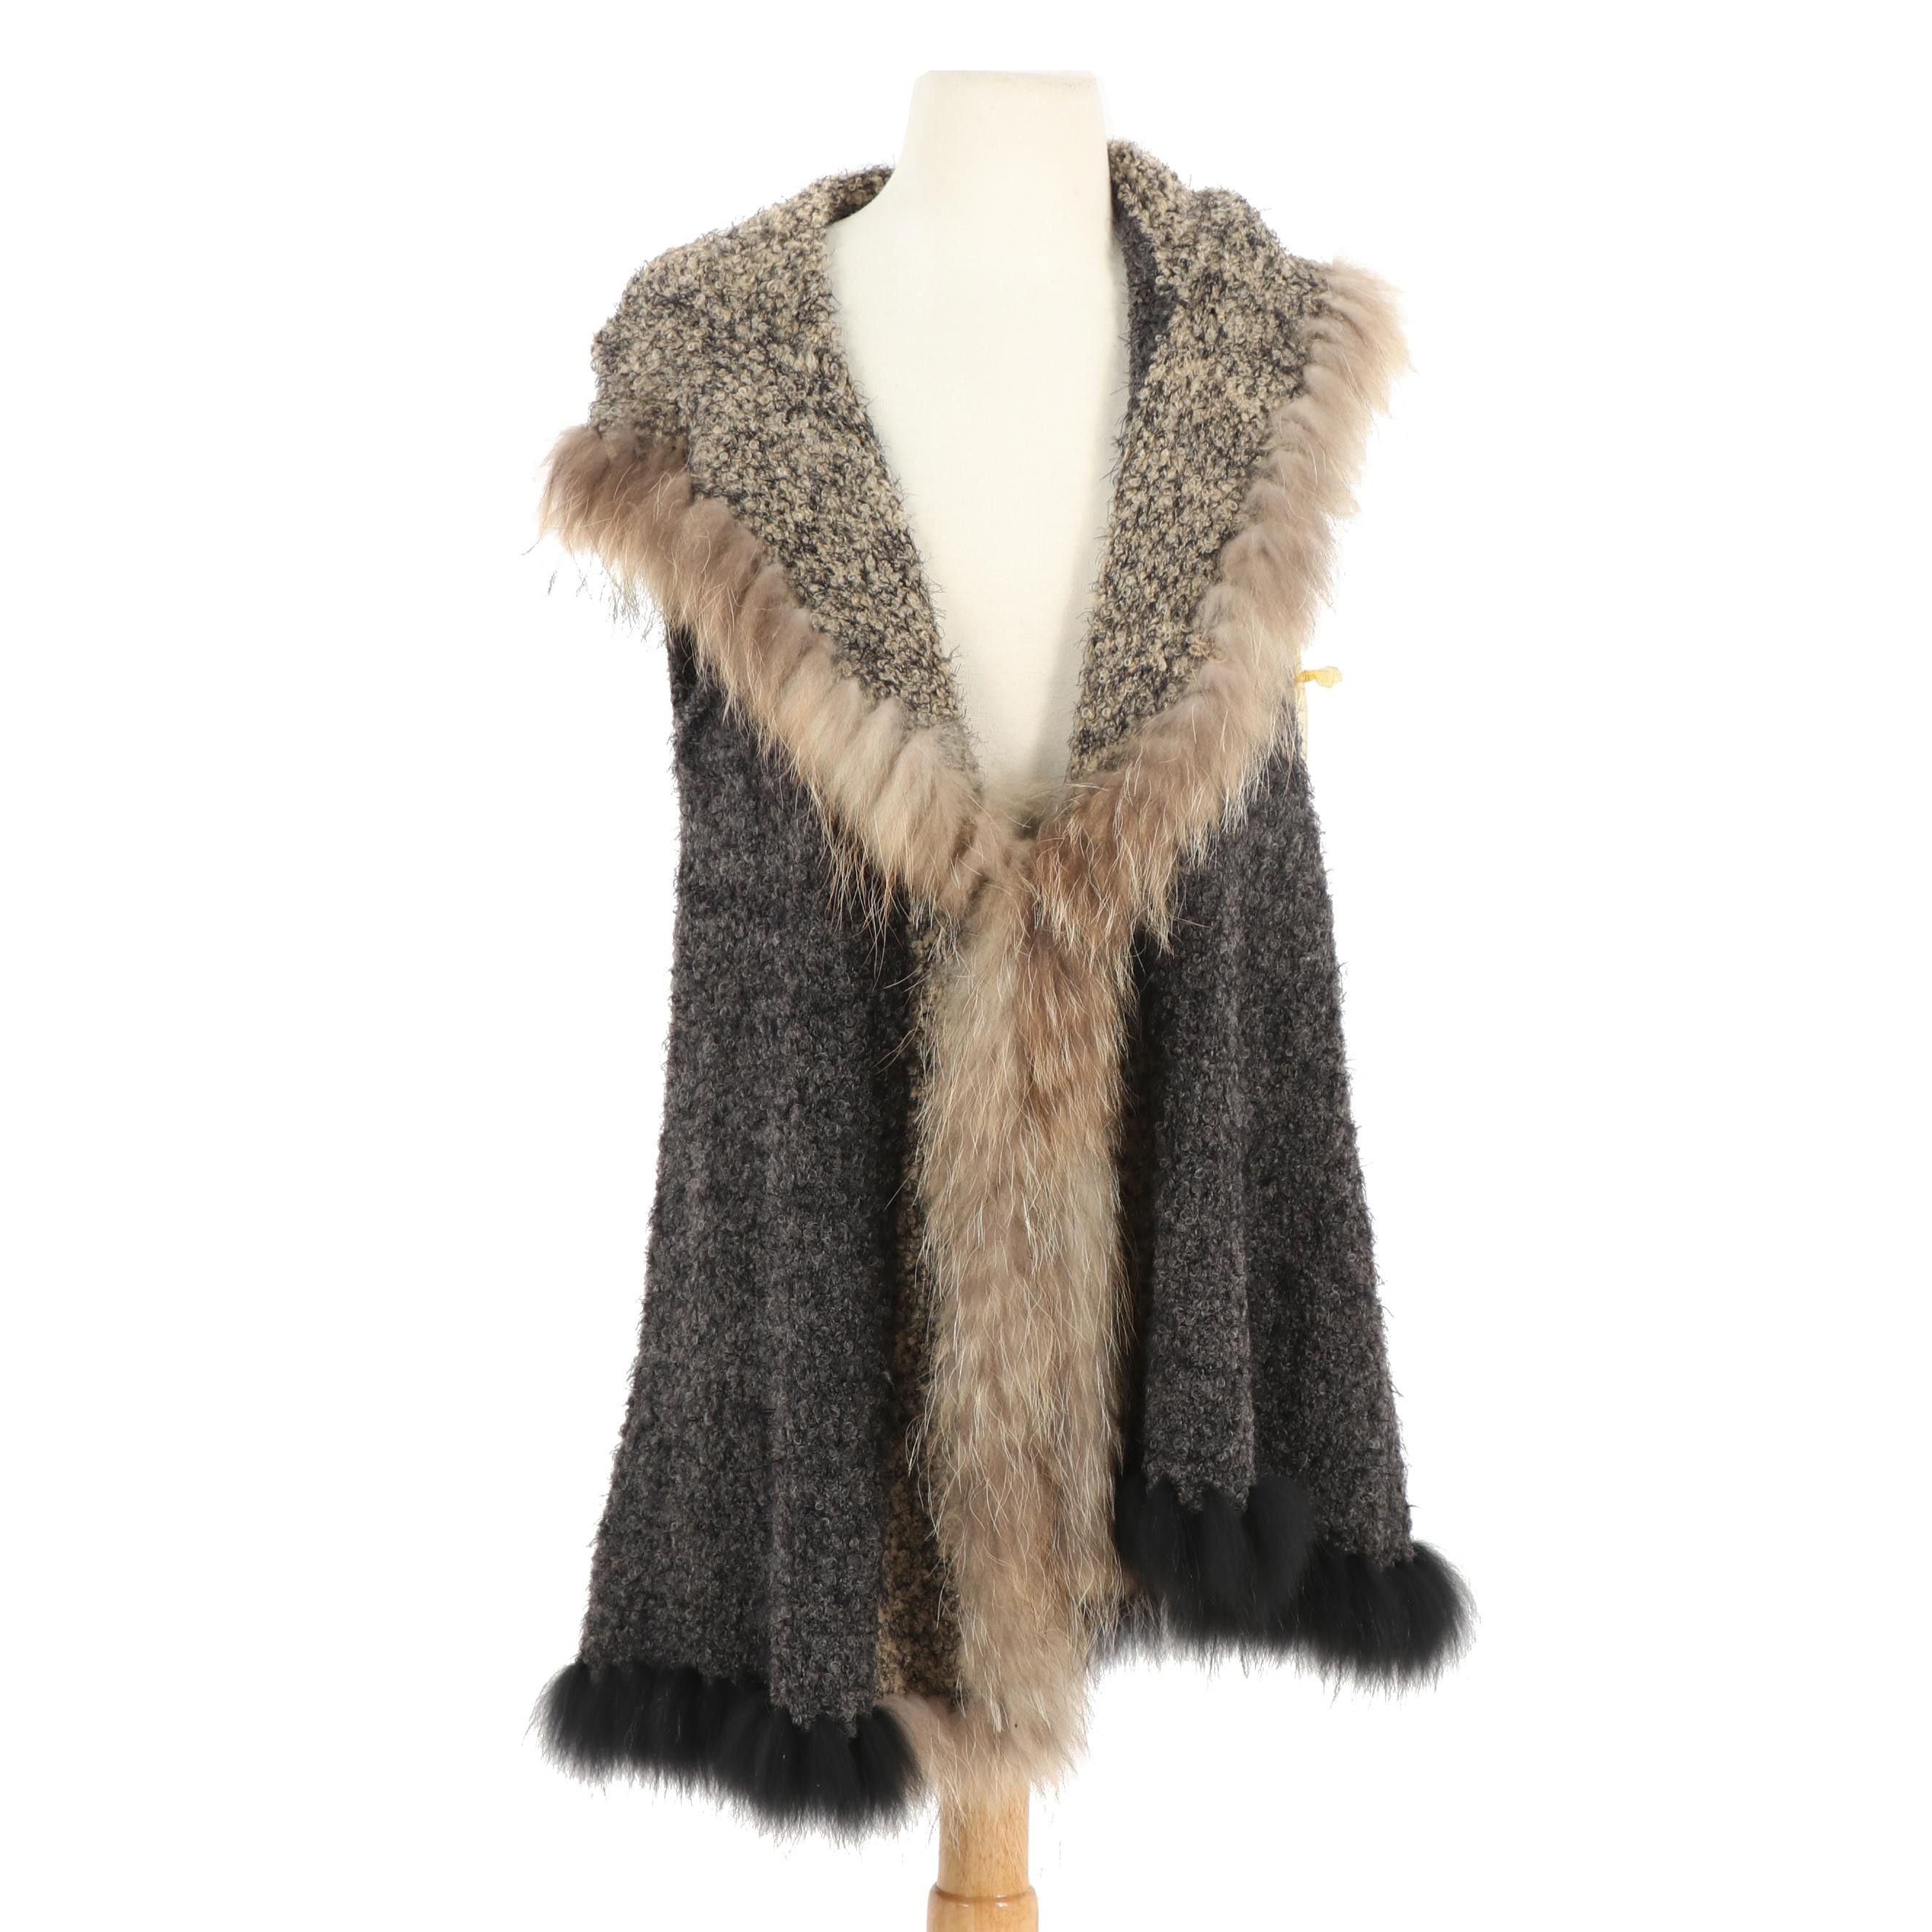 Metric Knits Fur Collection Hooded Vest with Raccoon Fur Trim